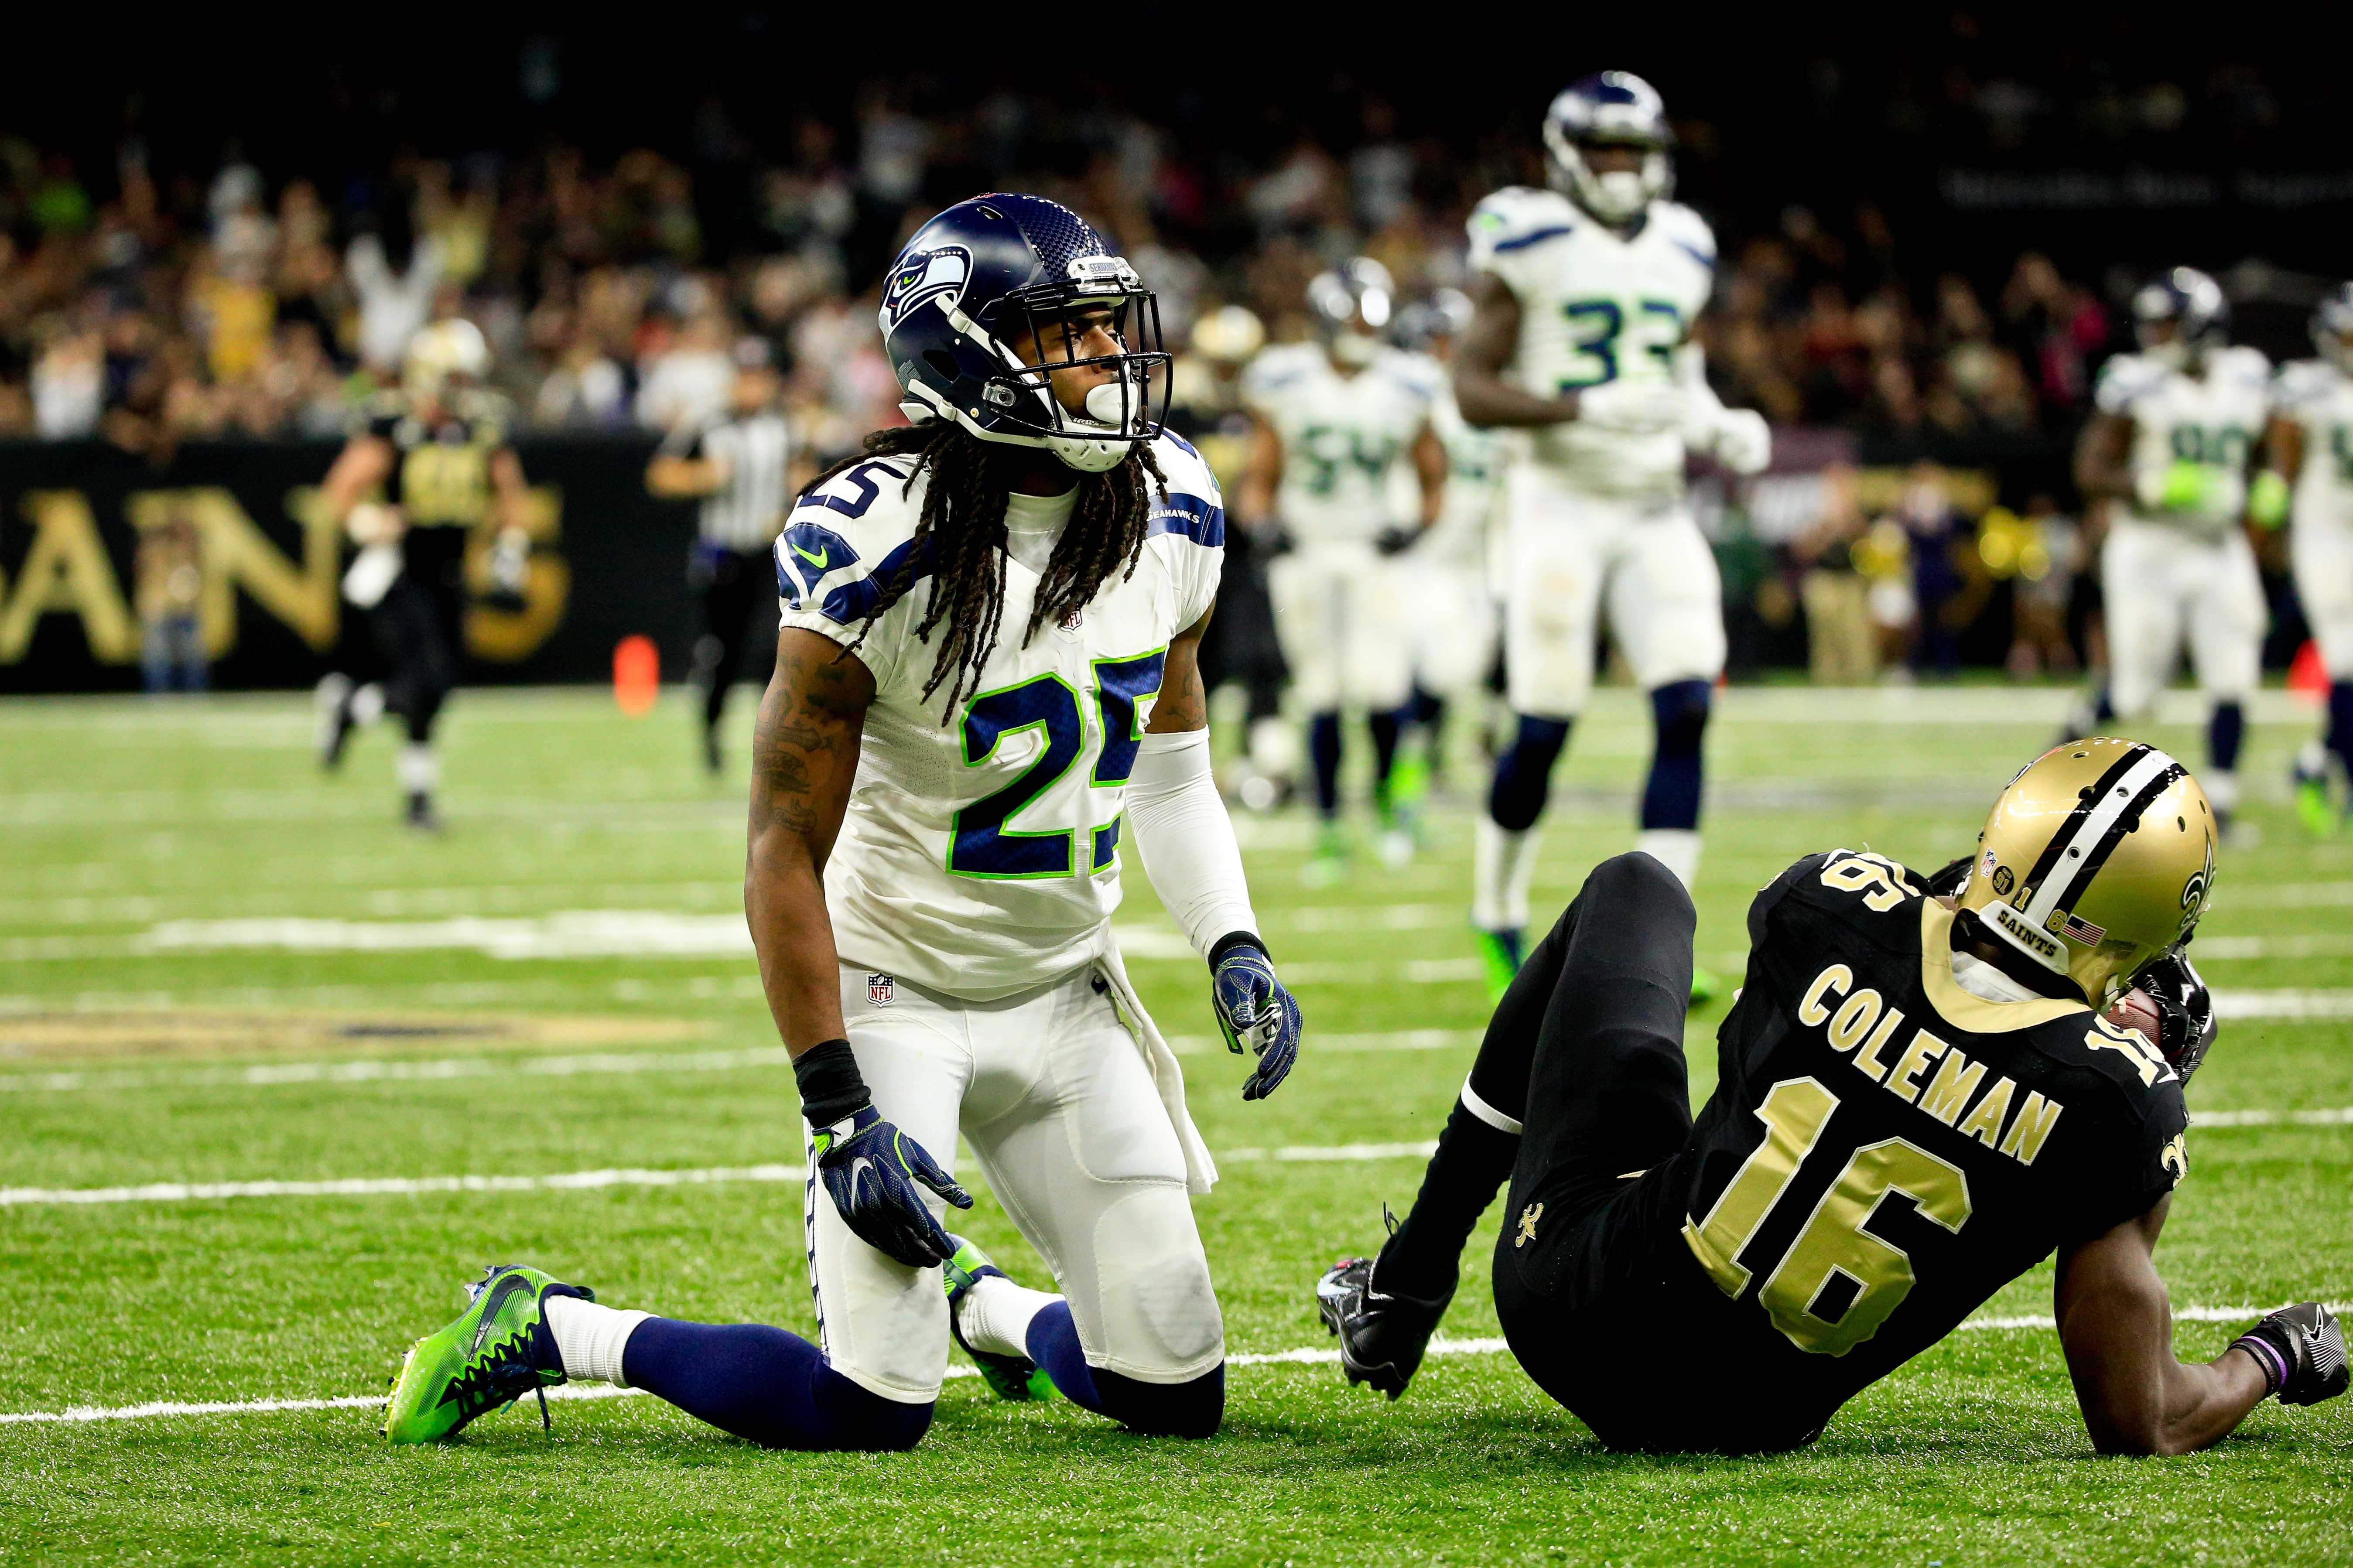 9643585-nfl-seattle-seahawks-at-new-orleans-saints